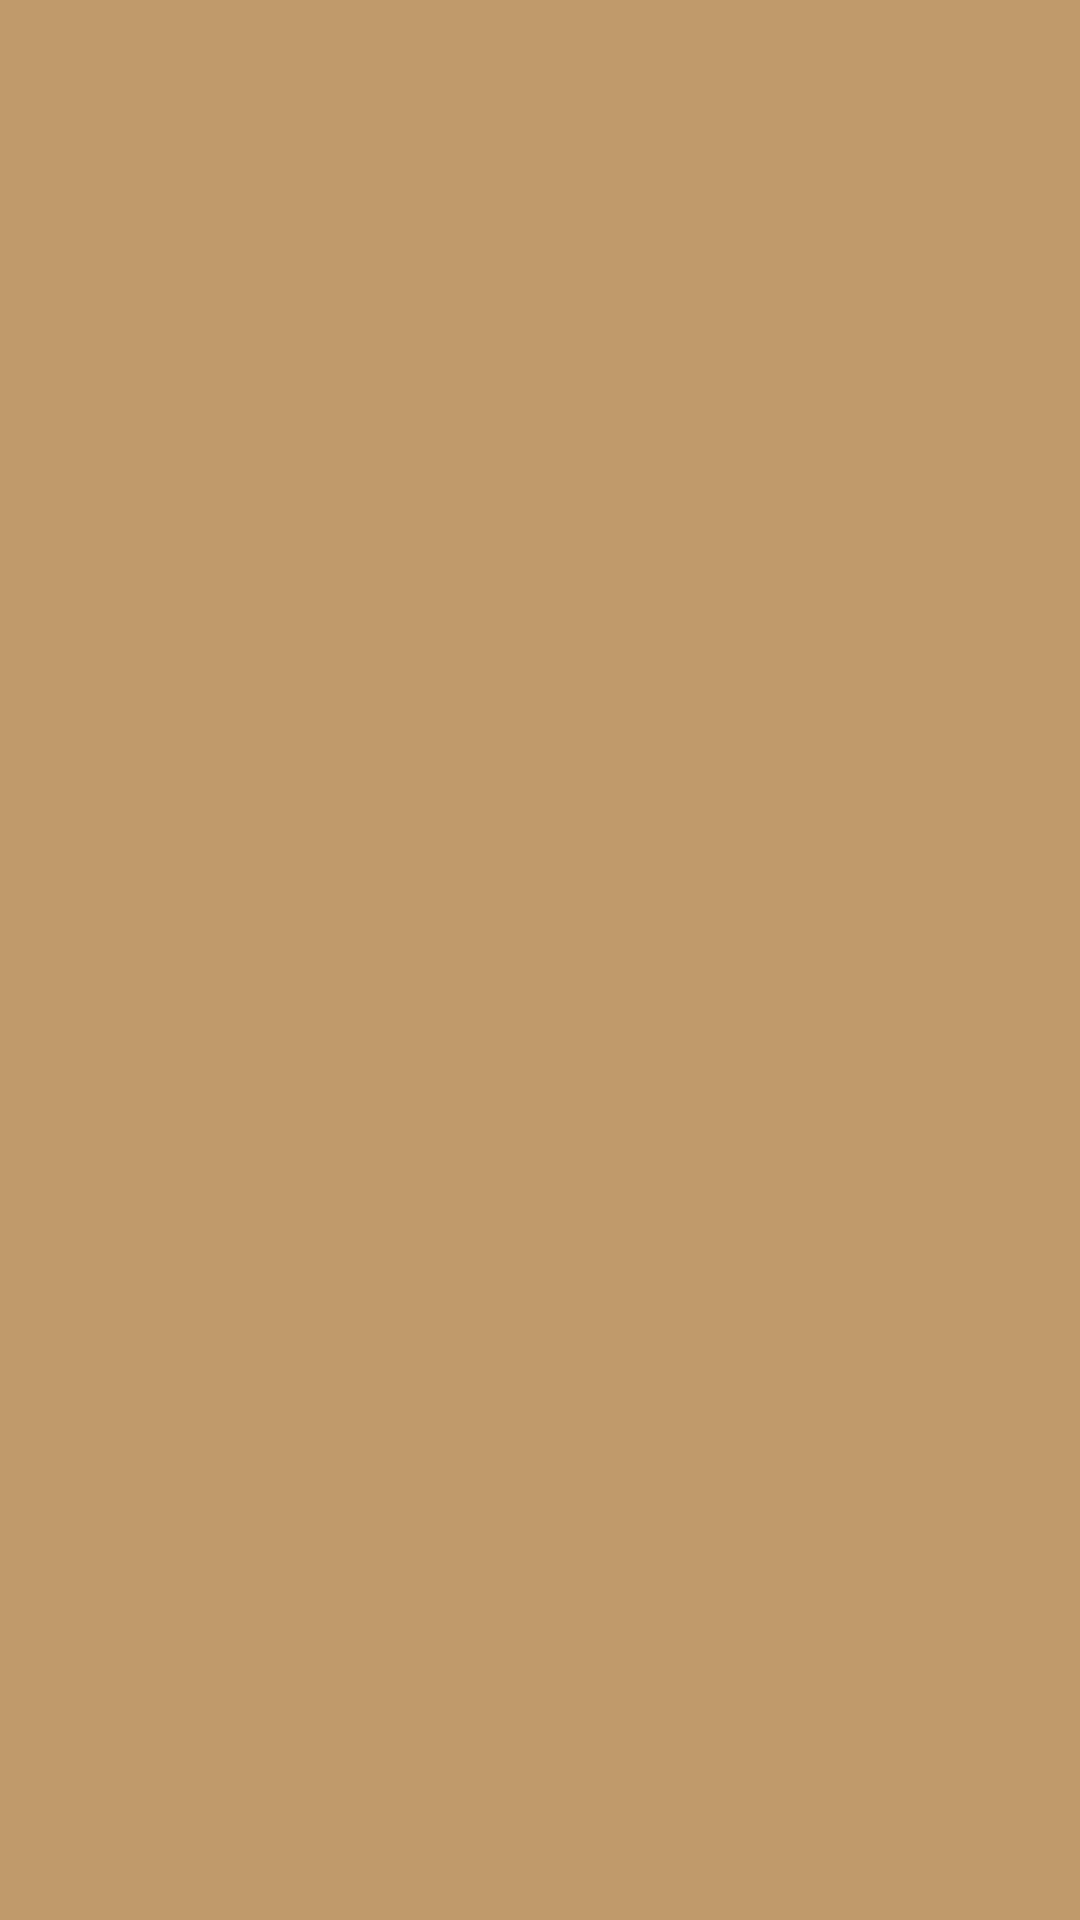 1080x1920 Wood Brown Solid Color Background